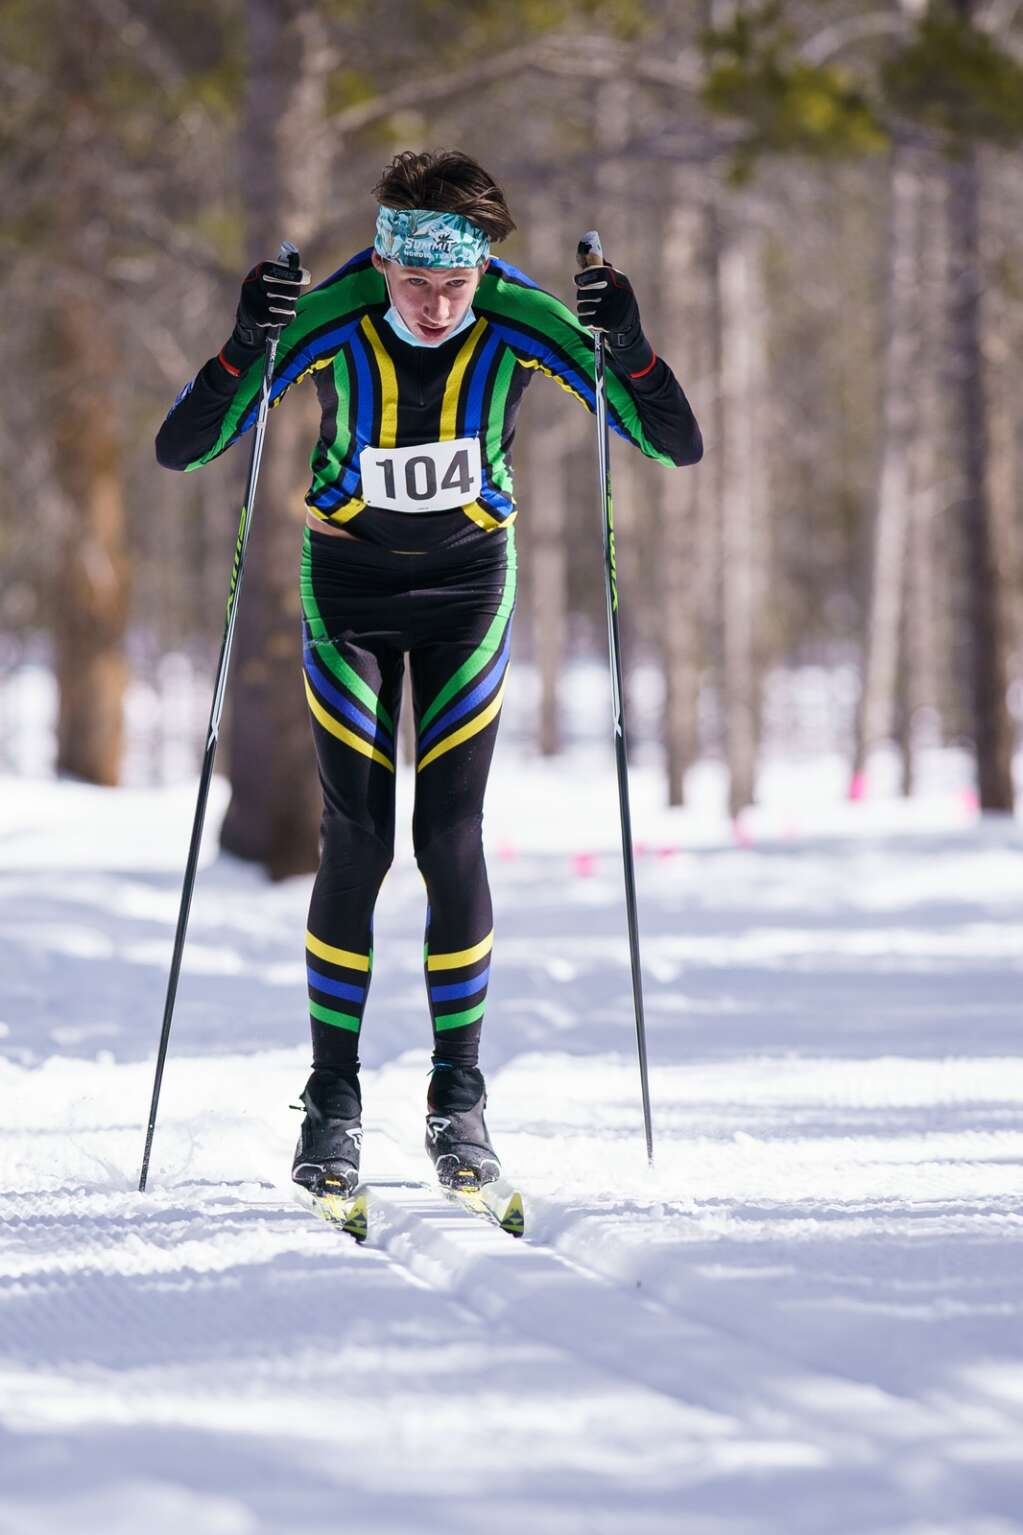 Evan Callahan poles his way through the woods during the CHSSL Ski Race held at the Leadville Colorado Mountain College campus. | Photo by John Hanson